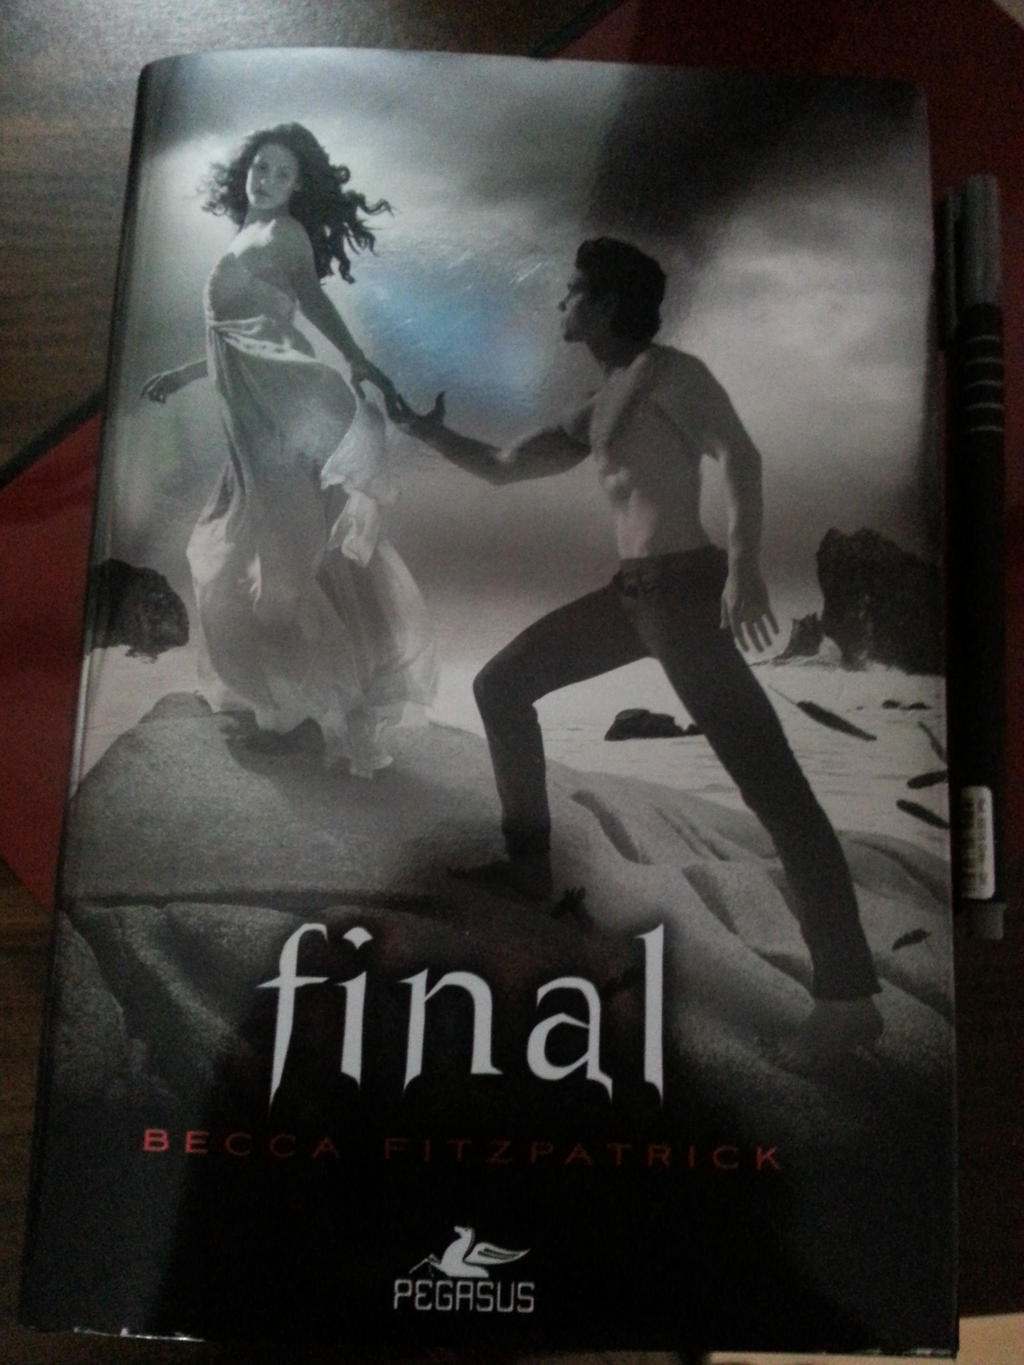 finale by becca fitzpatrick summary and Read pdf finale absolutely for free at readanybookcom.